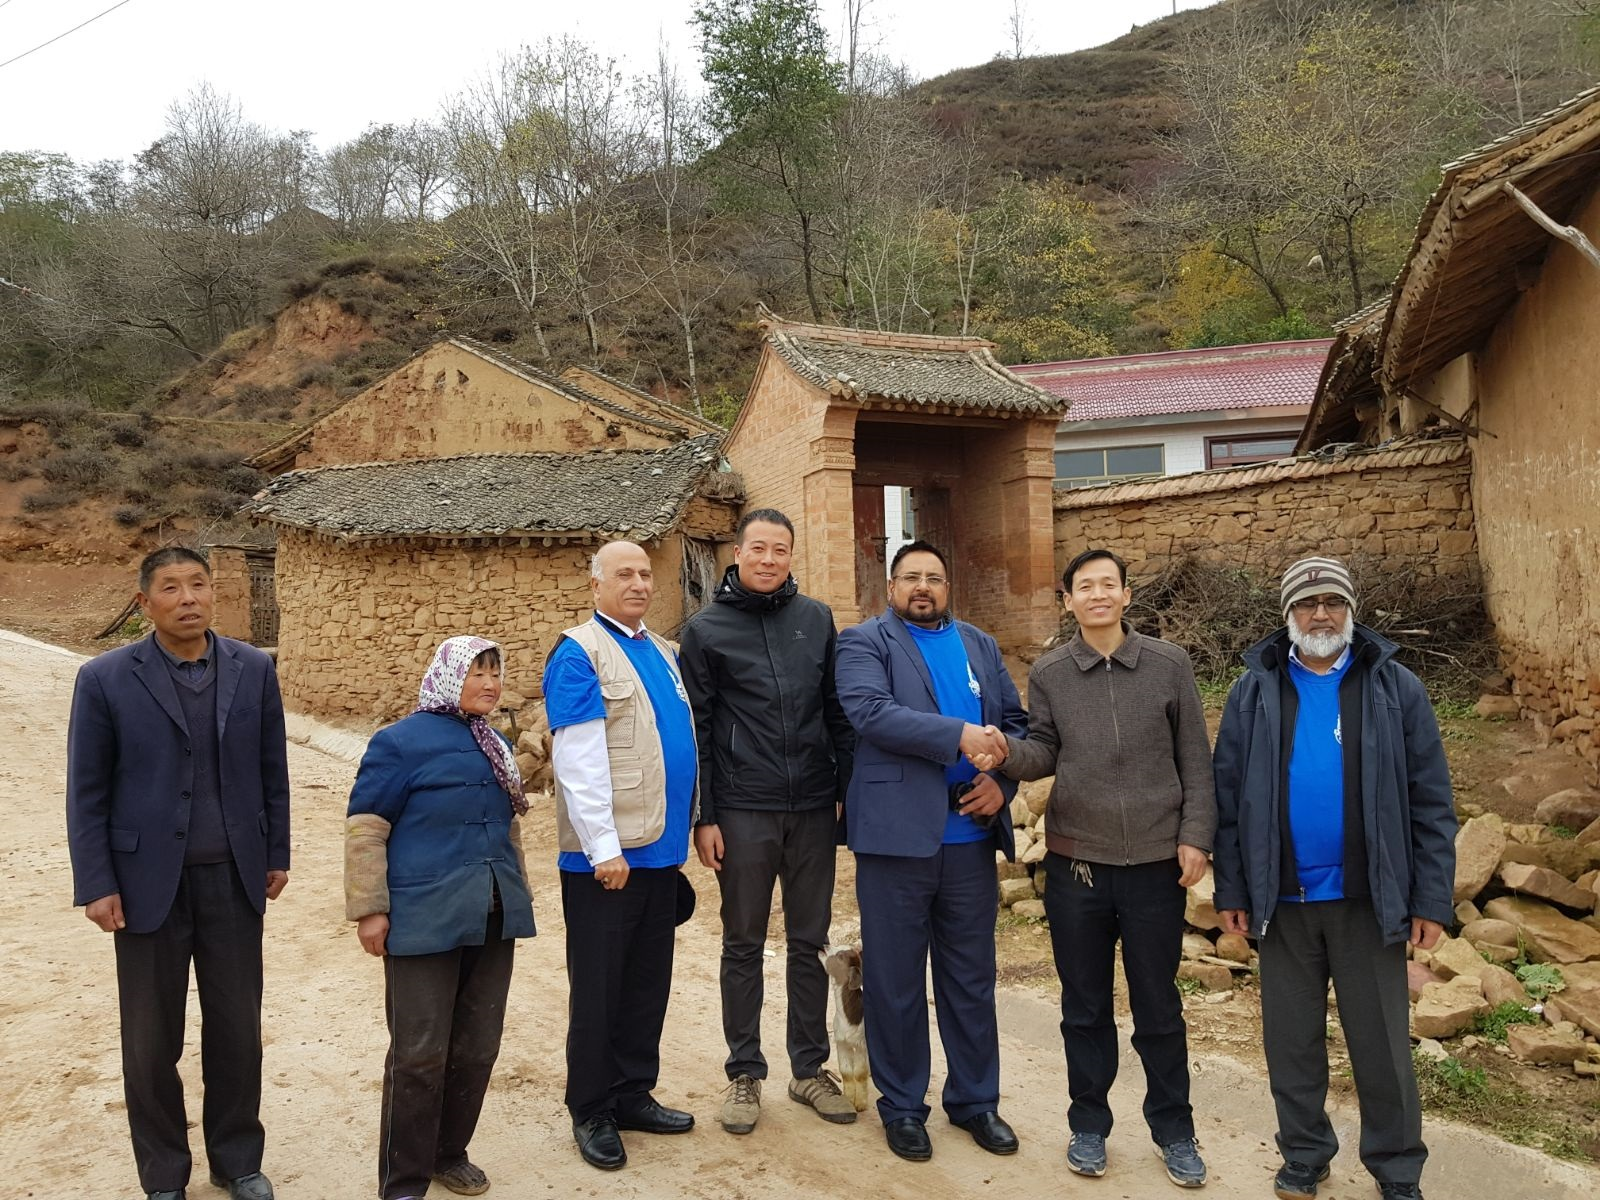 Mr Hafiz Muhammad Shabbir's visit to the Housing Project in China, funded by Zakaat House Kuwait